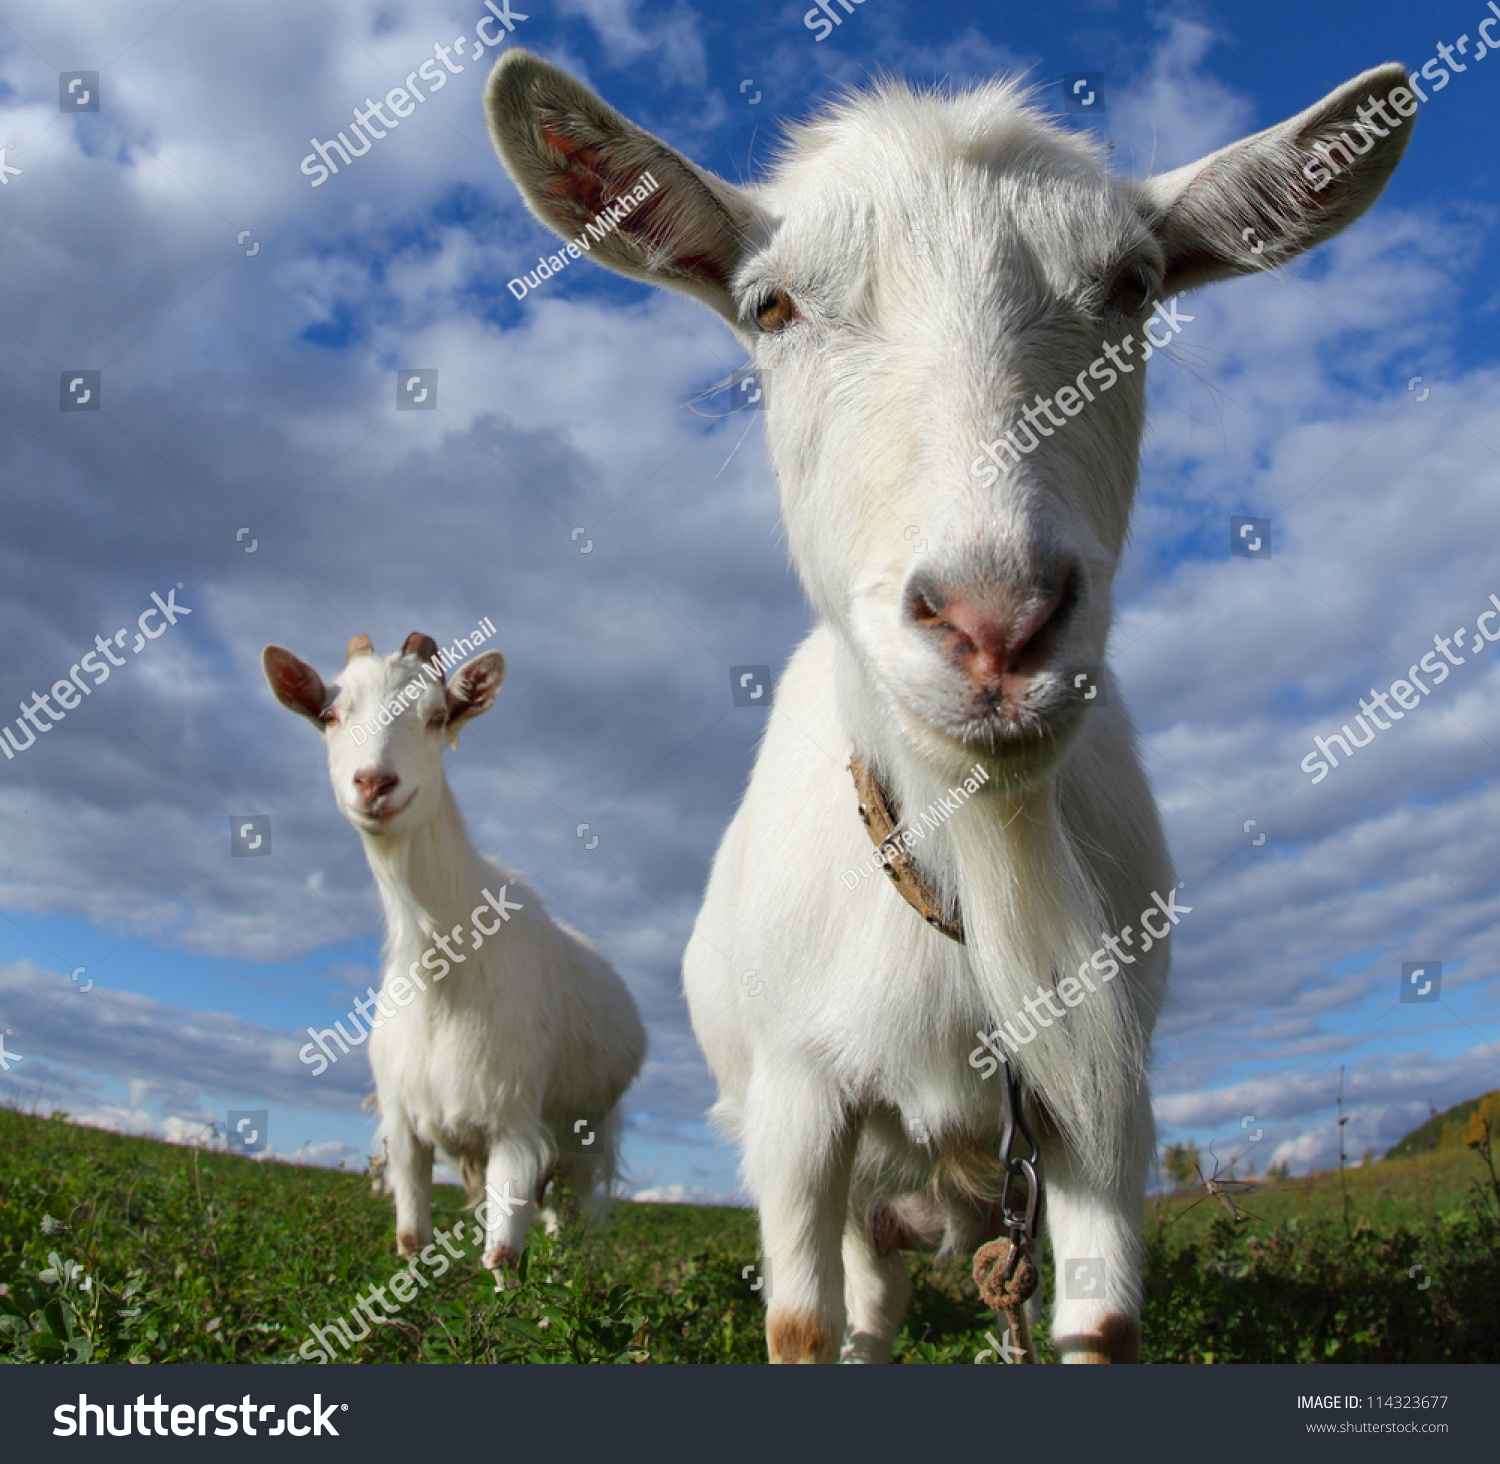 funny looking goat - photo #12